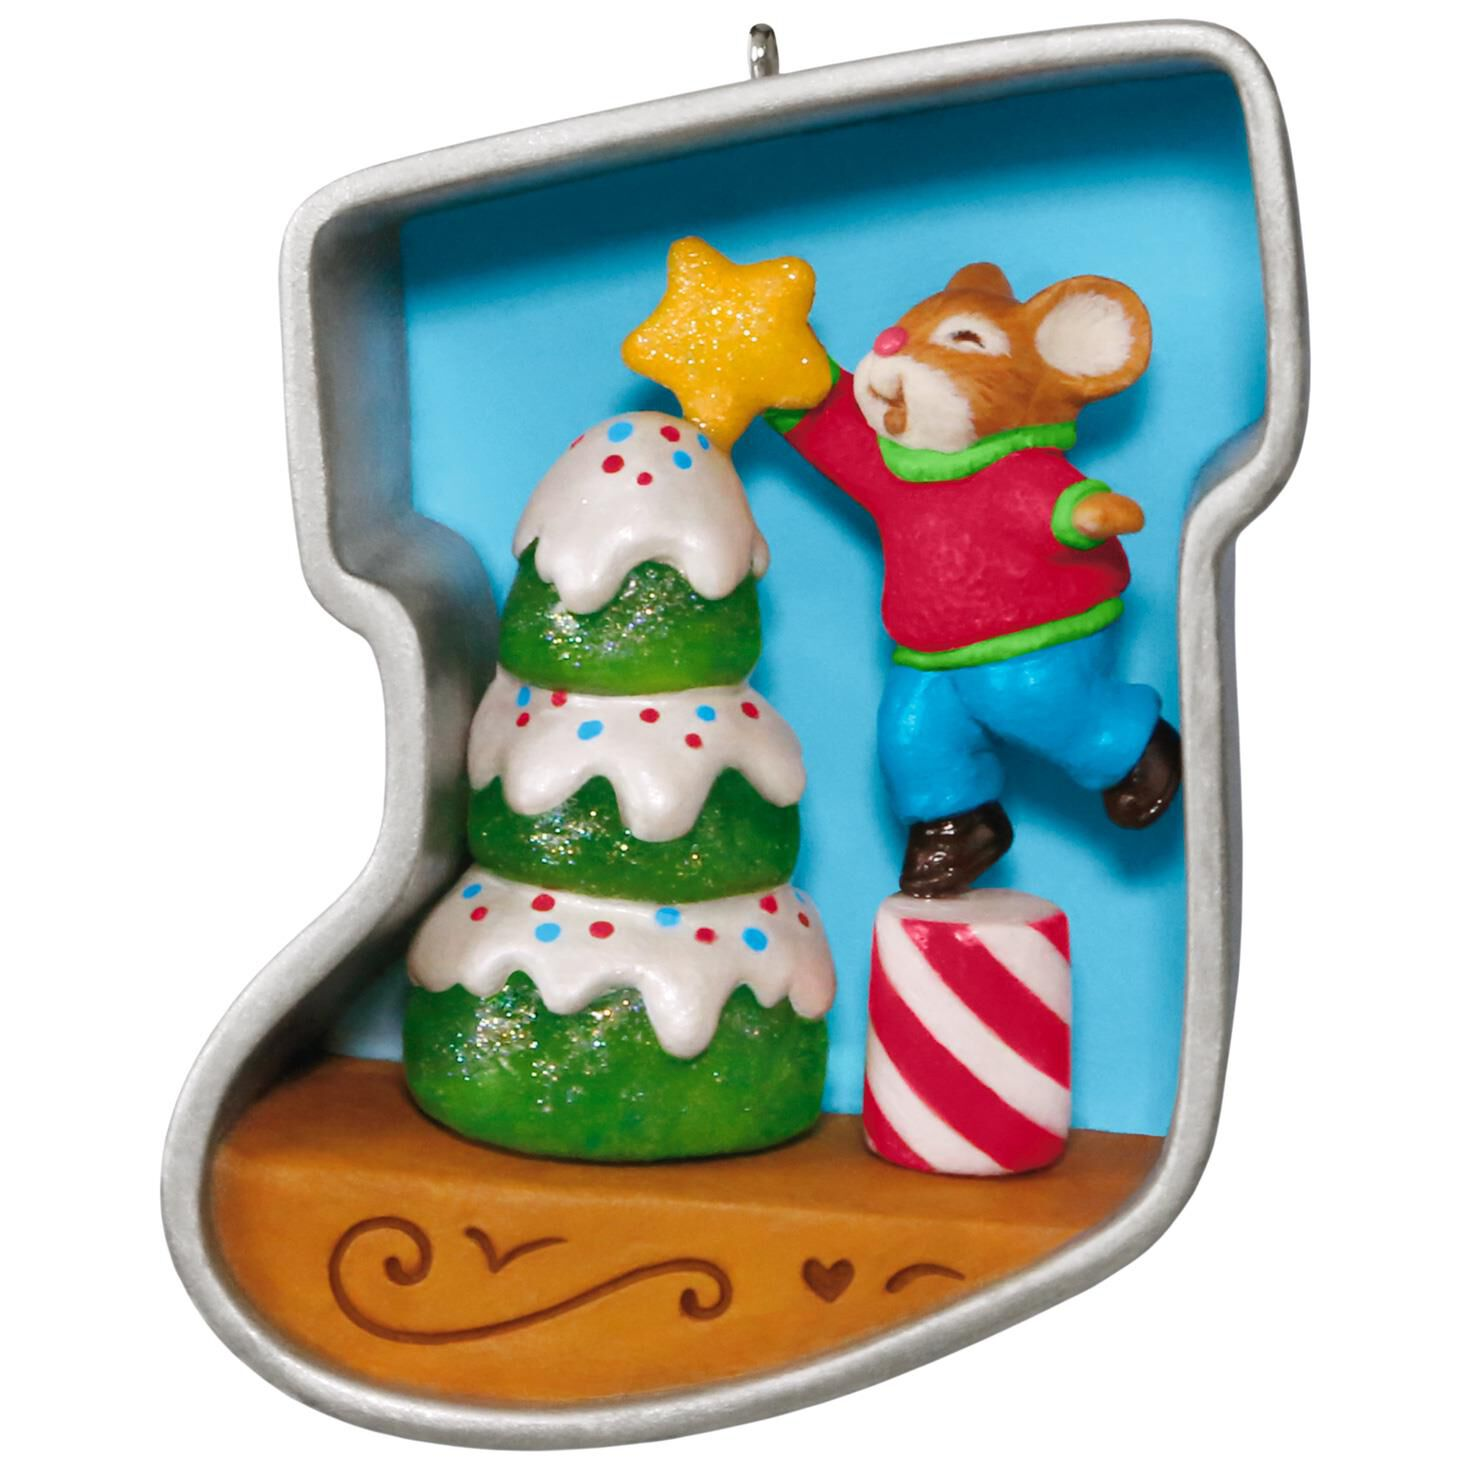 Musical christmas ornaments that play music - Musical Christmas Ornaments That Play Music